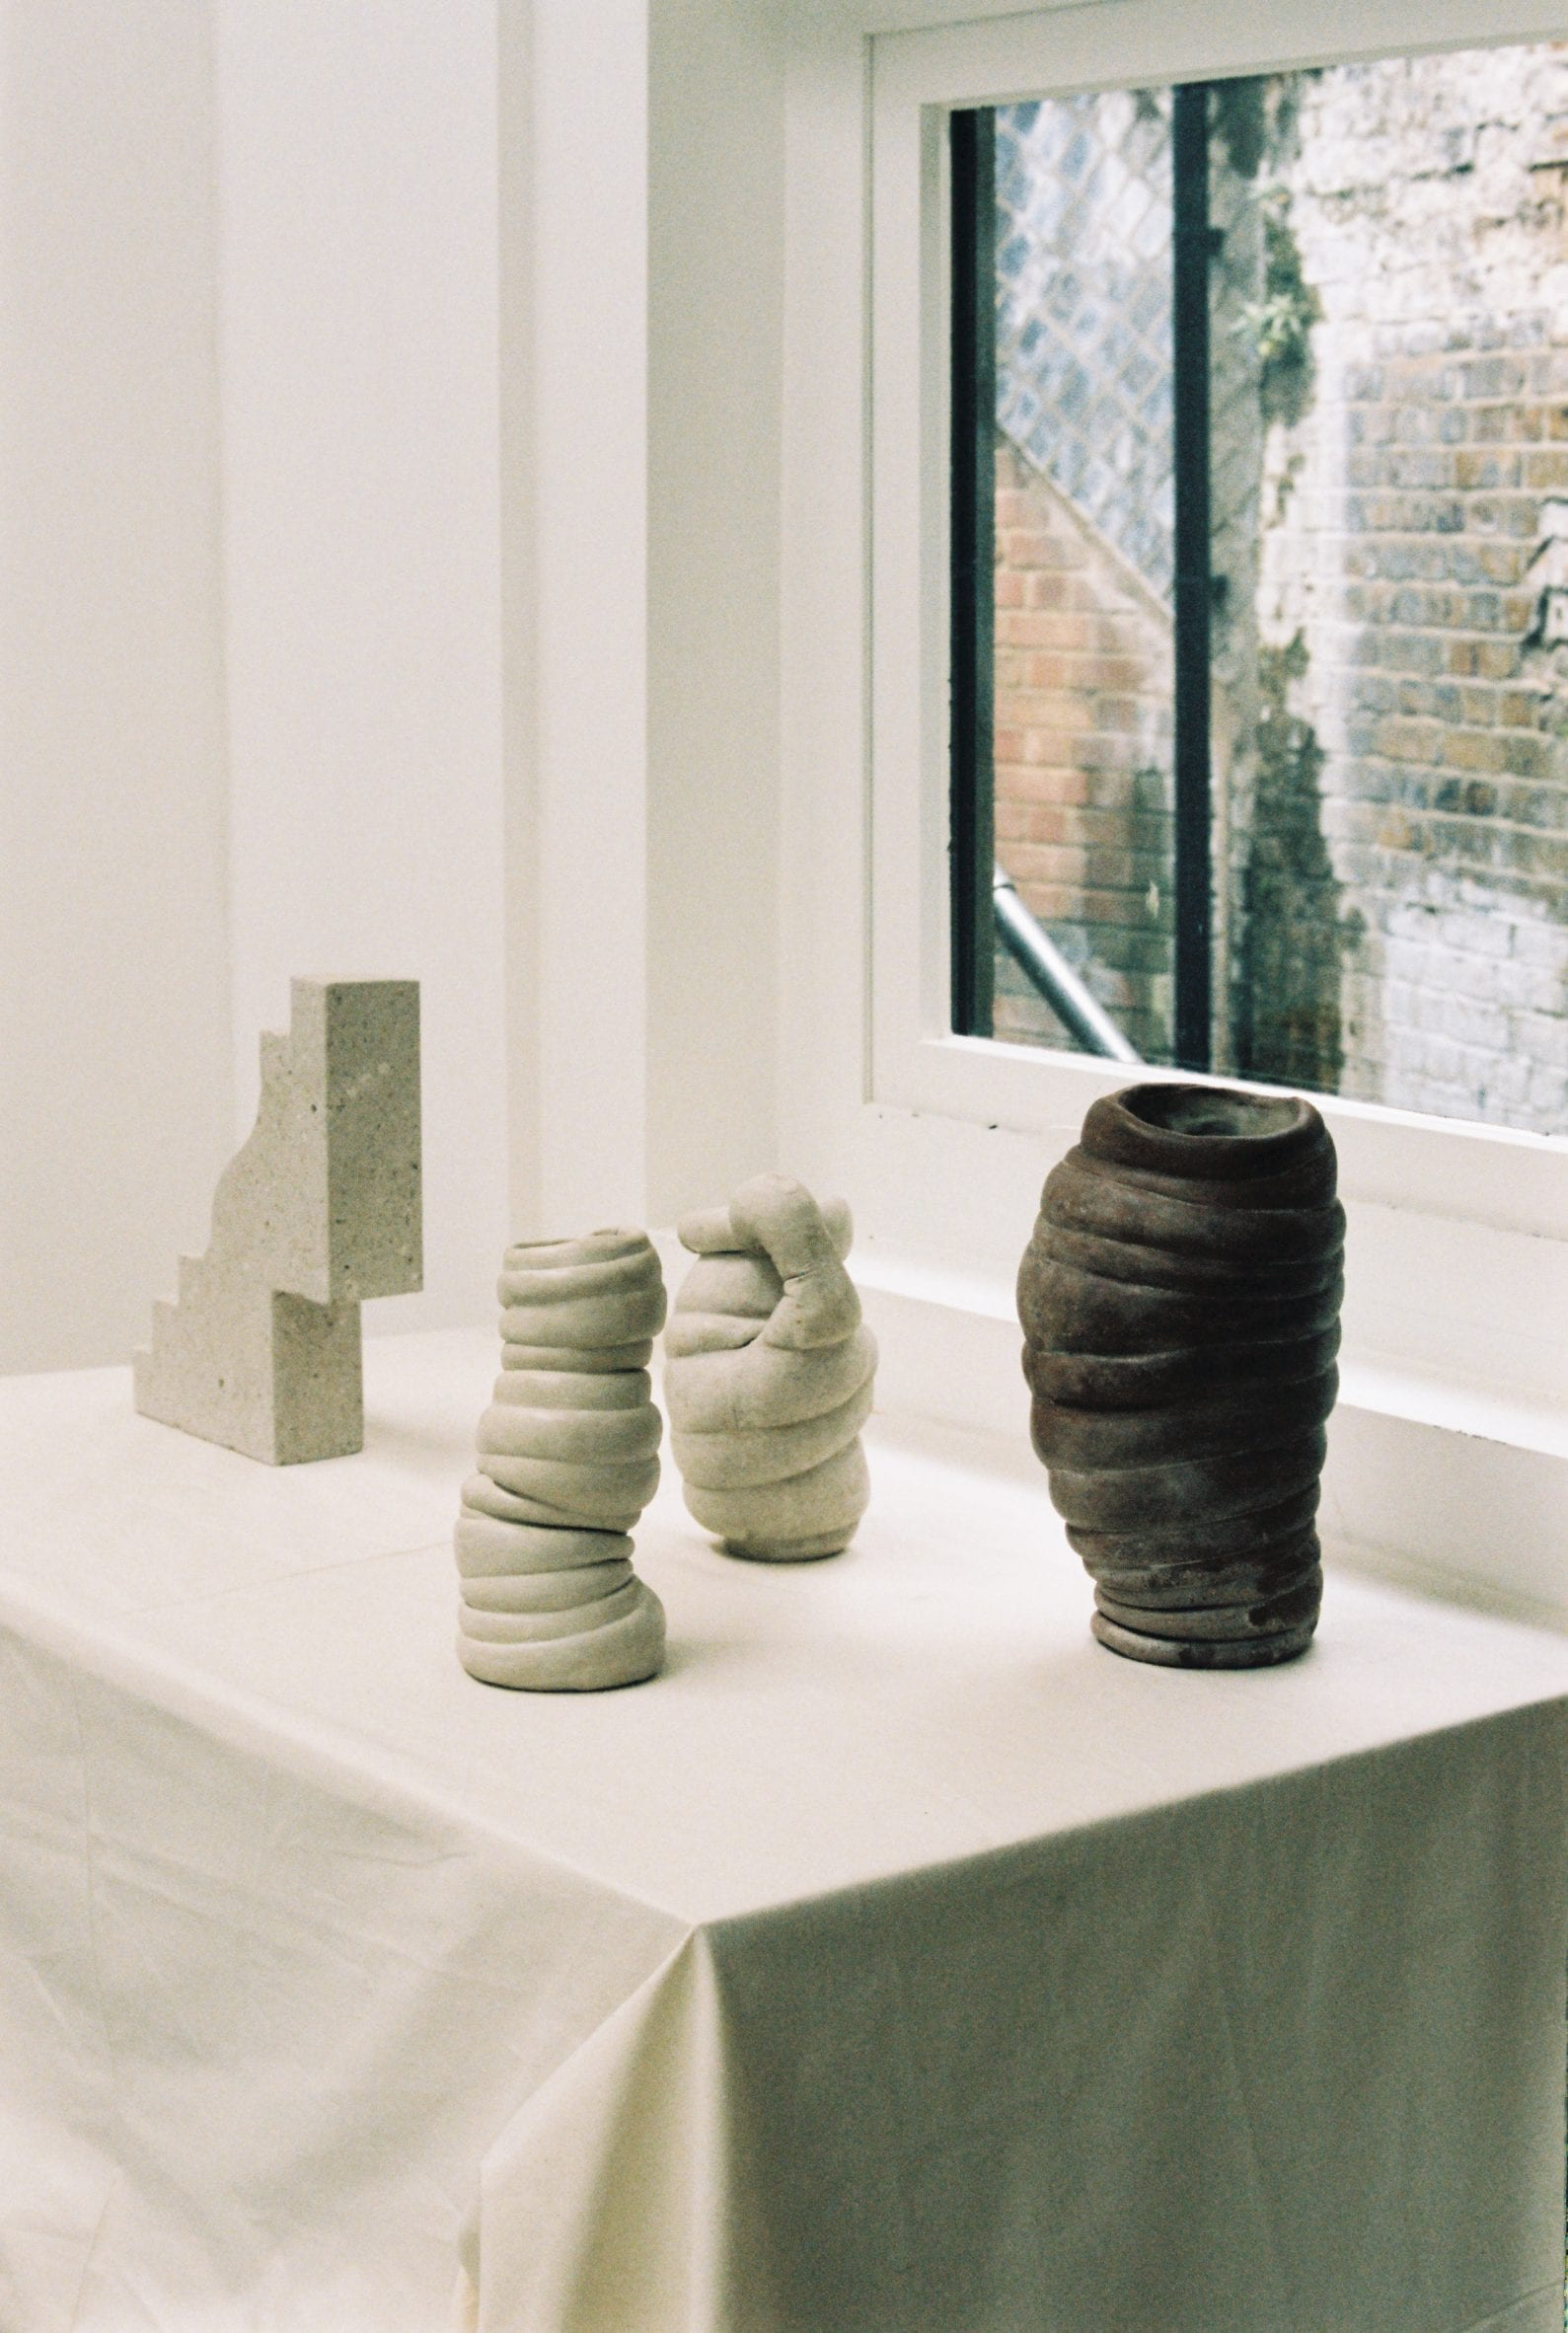 A collection of cement and stone vases and sculptures